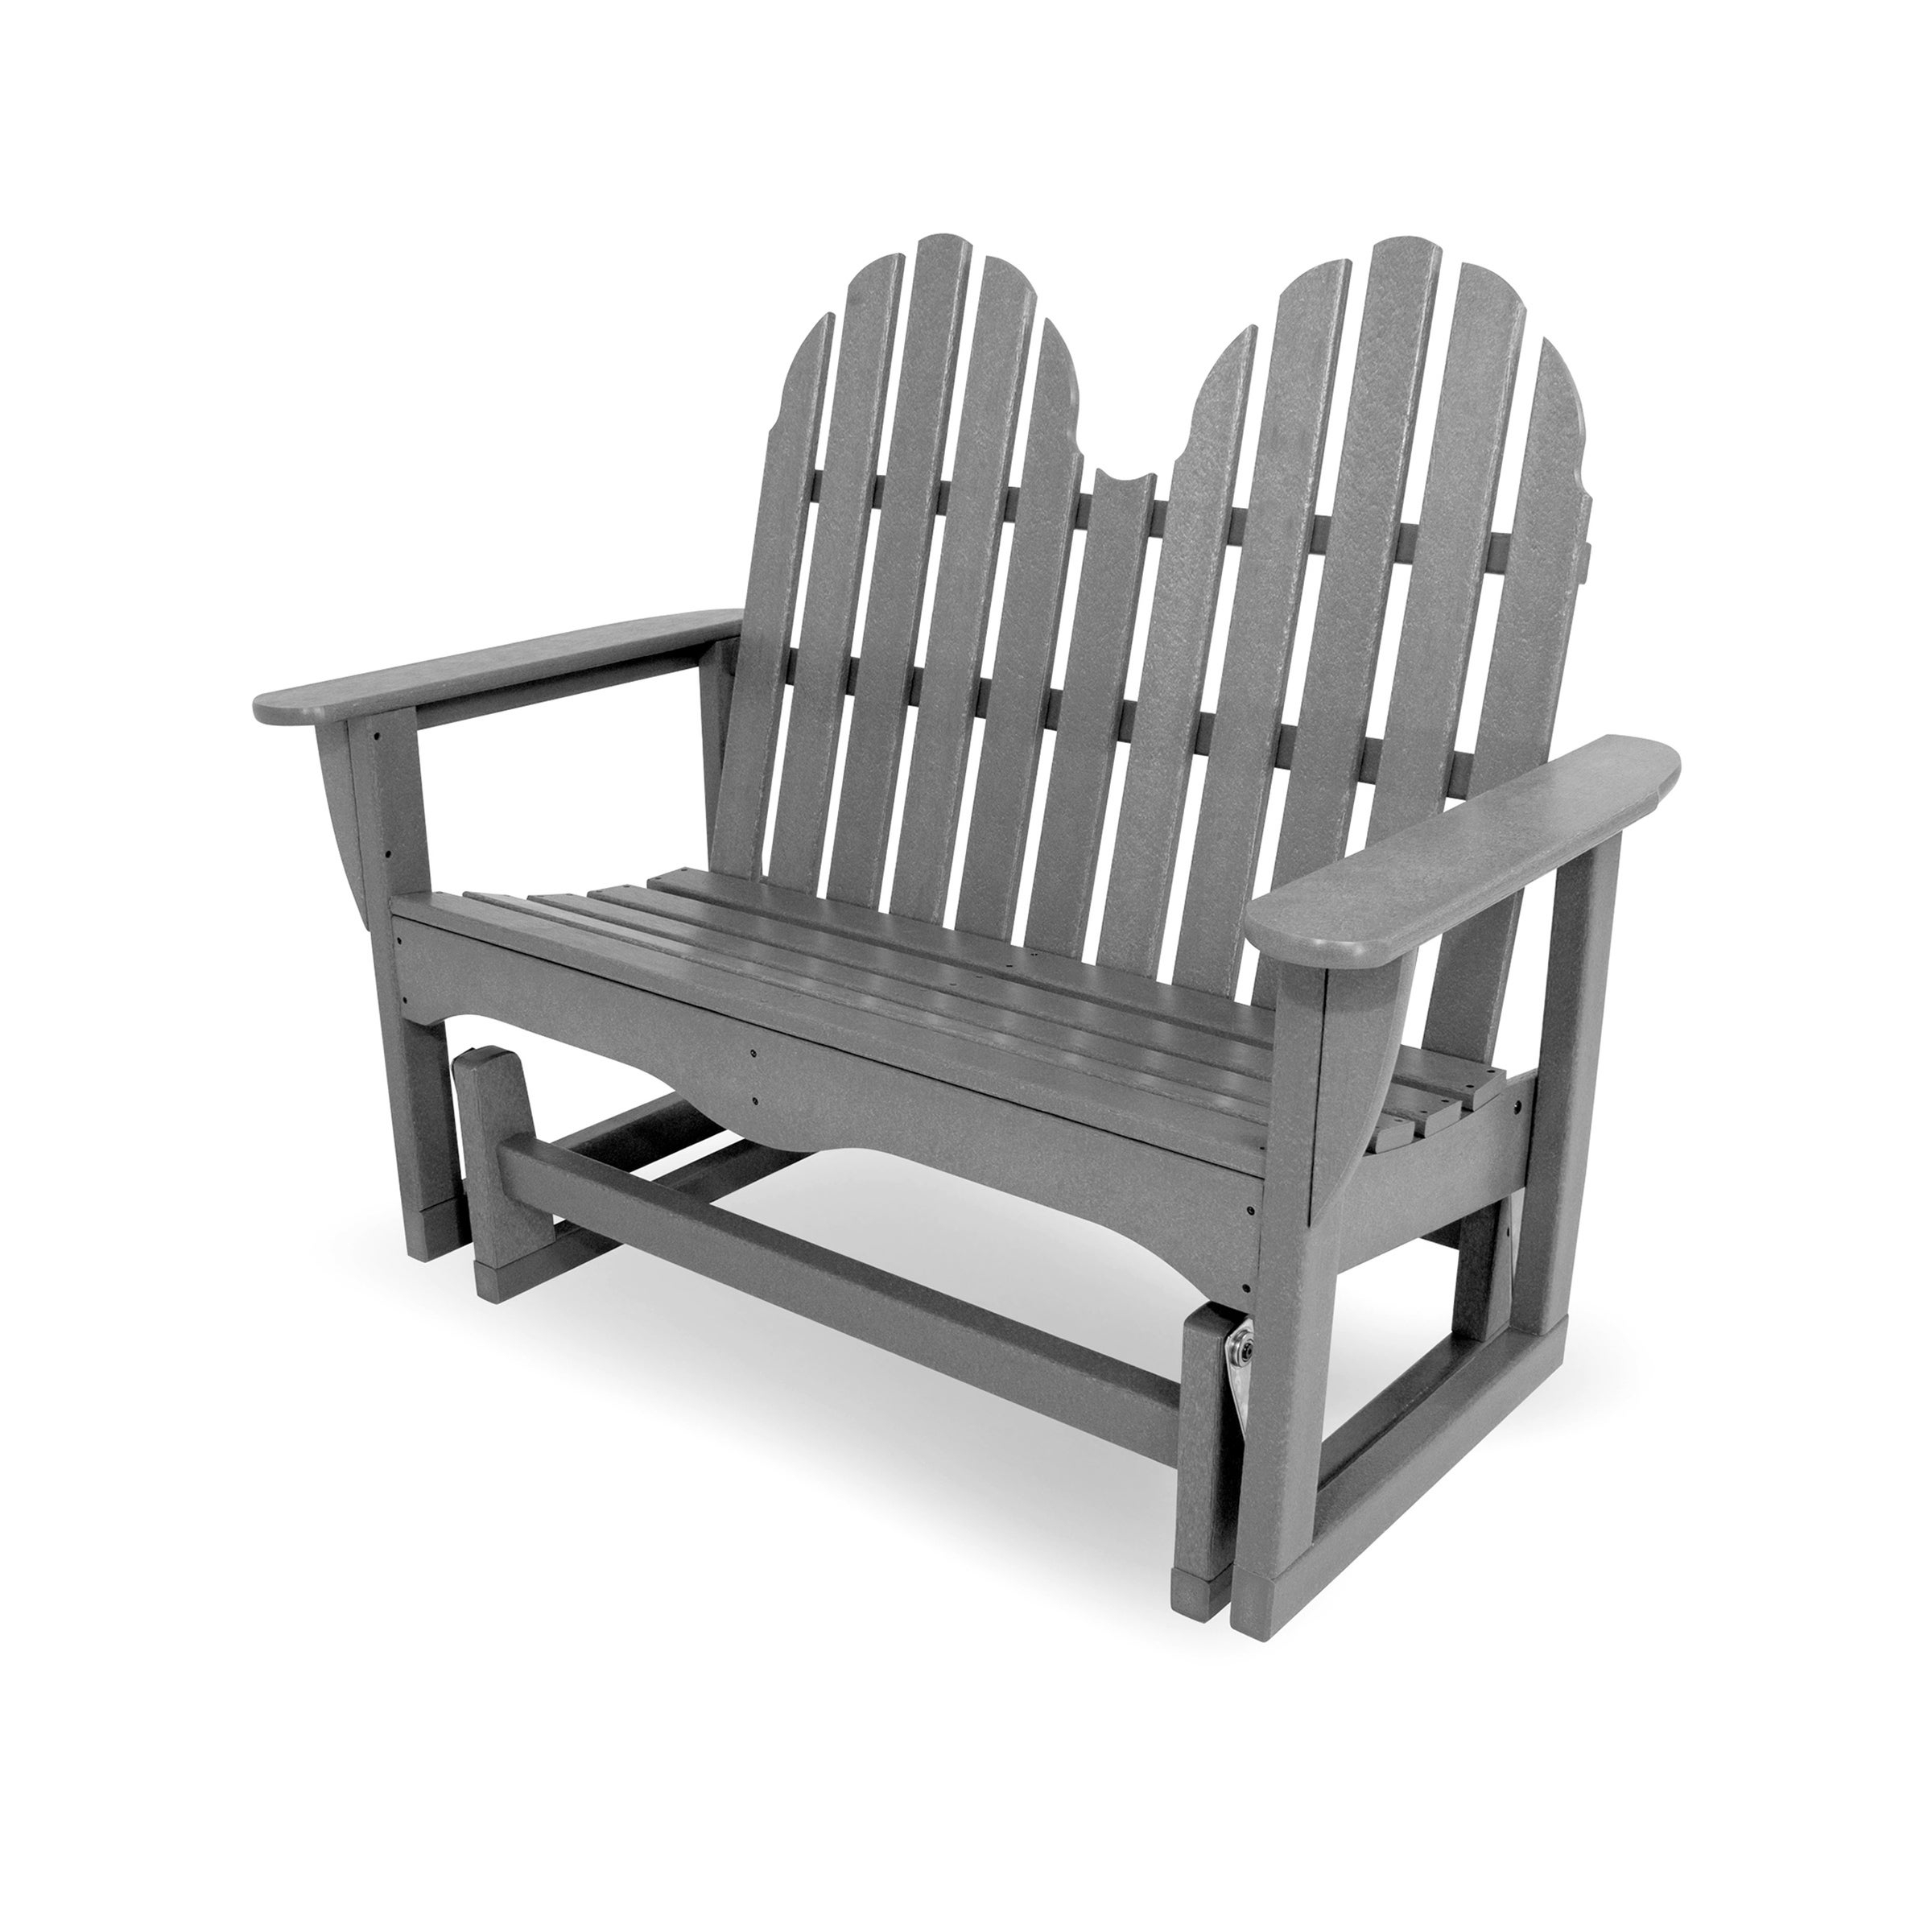 "Polywood® Classic Adirondack 48"" Outdoor Glider Bench Pertaining To Classic Glider Benches (View 22 of 25)"